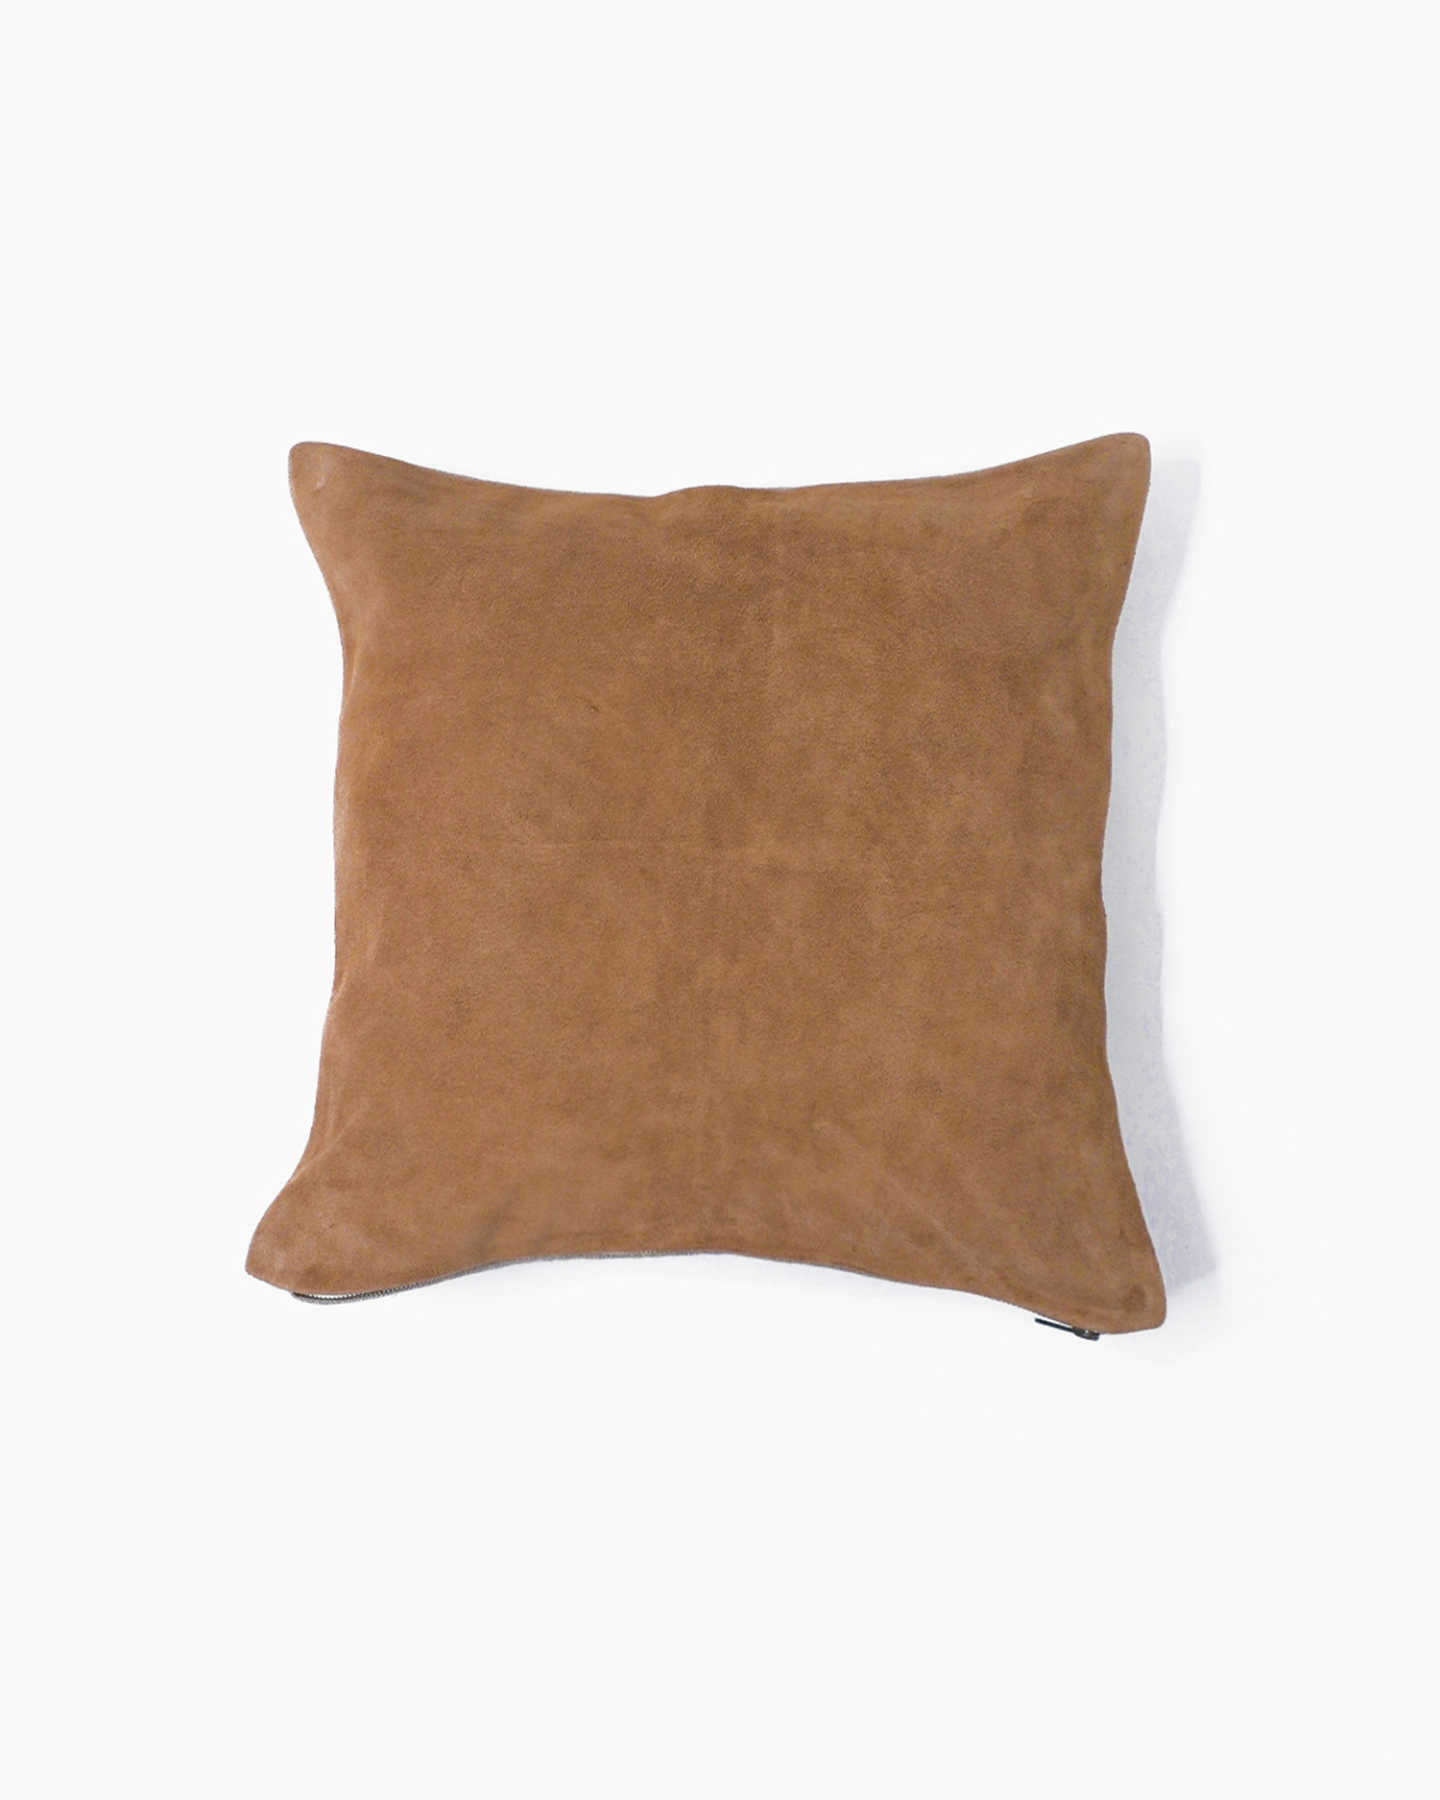 Premium Suede Pillow Cover - Camel